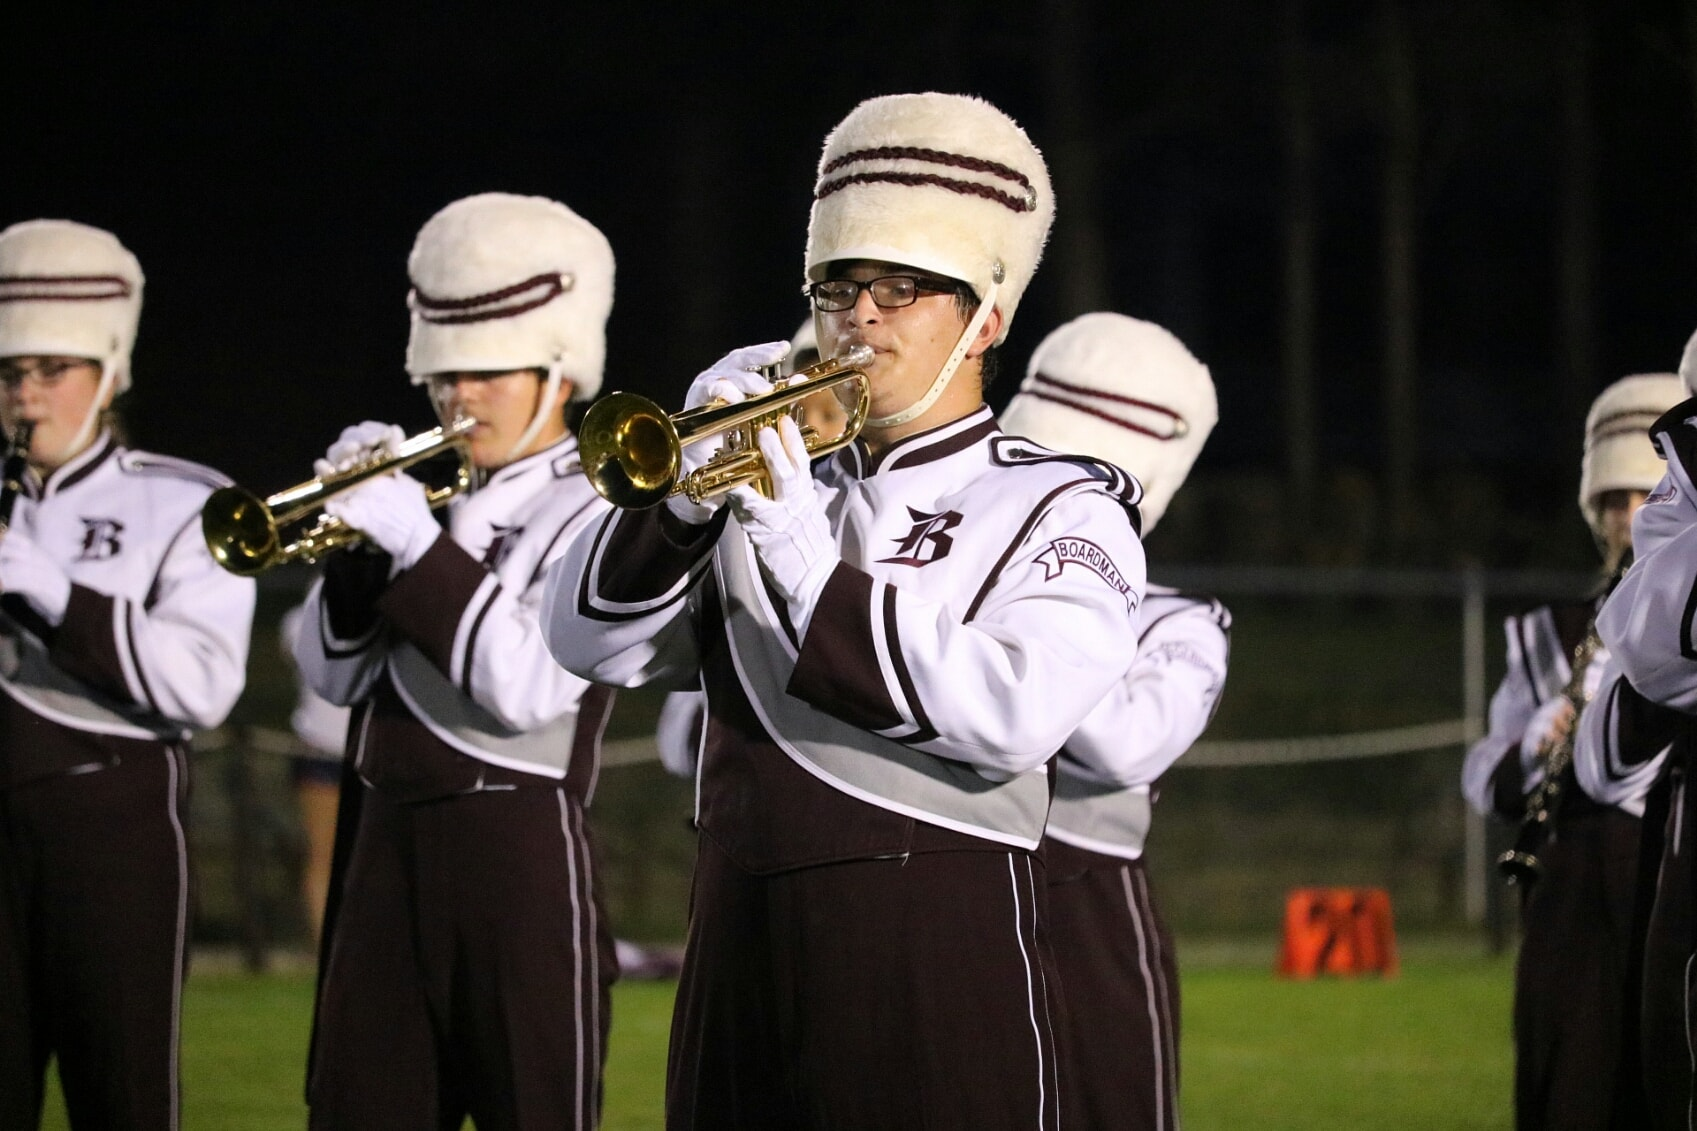 NIGHT TIME BAND photo 2018